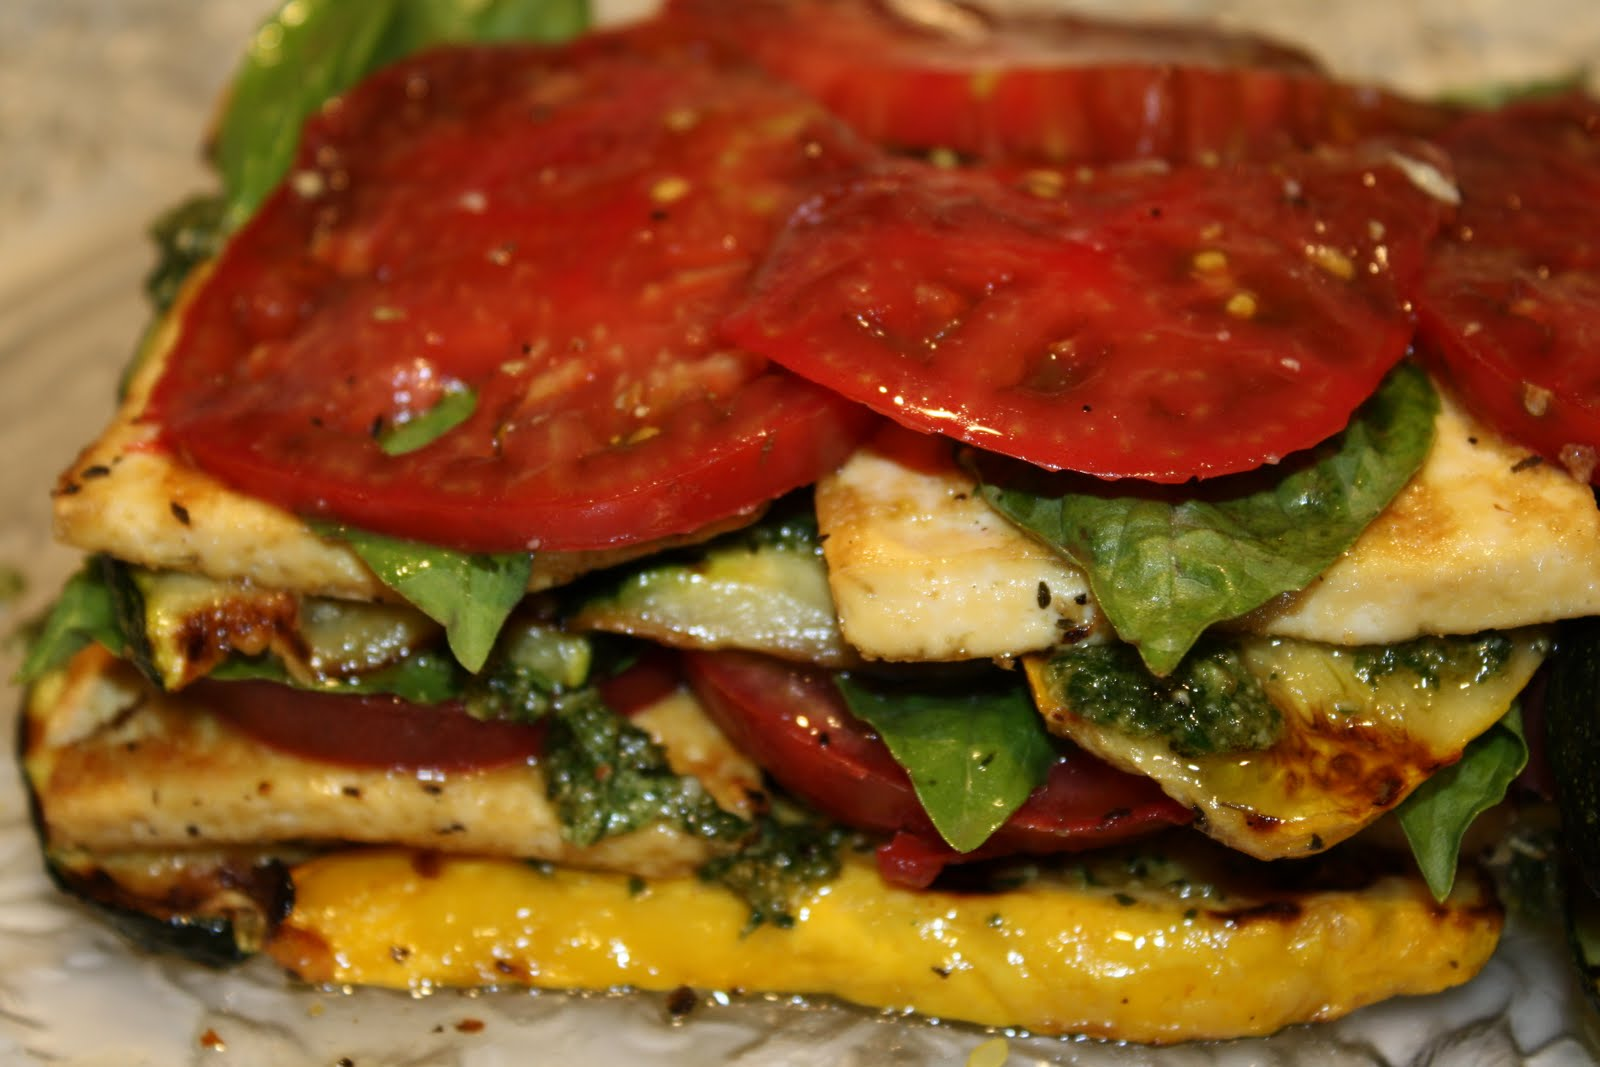 Dreamin' It Vegan: Perfect Summer Grilled Dinner & Cleo dog